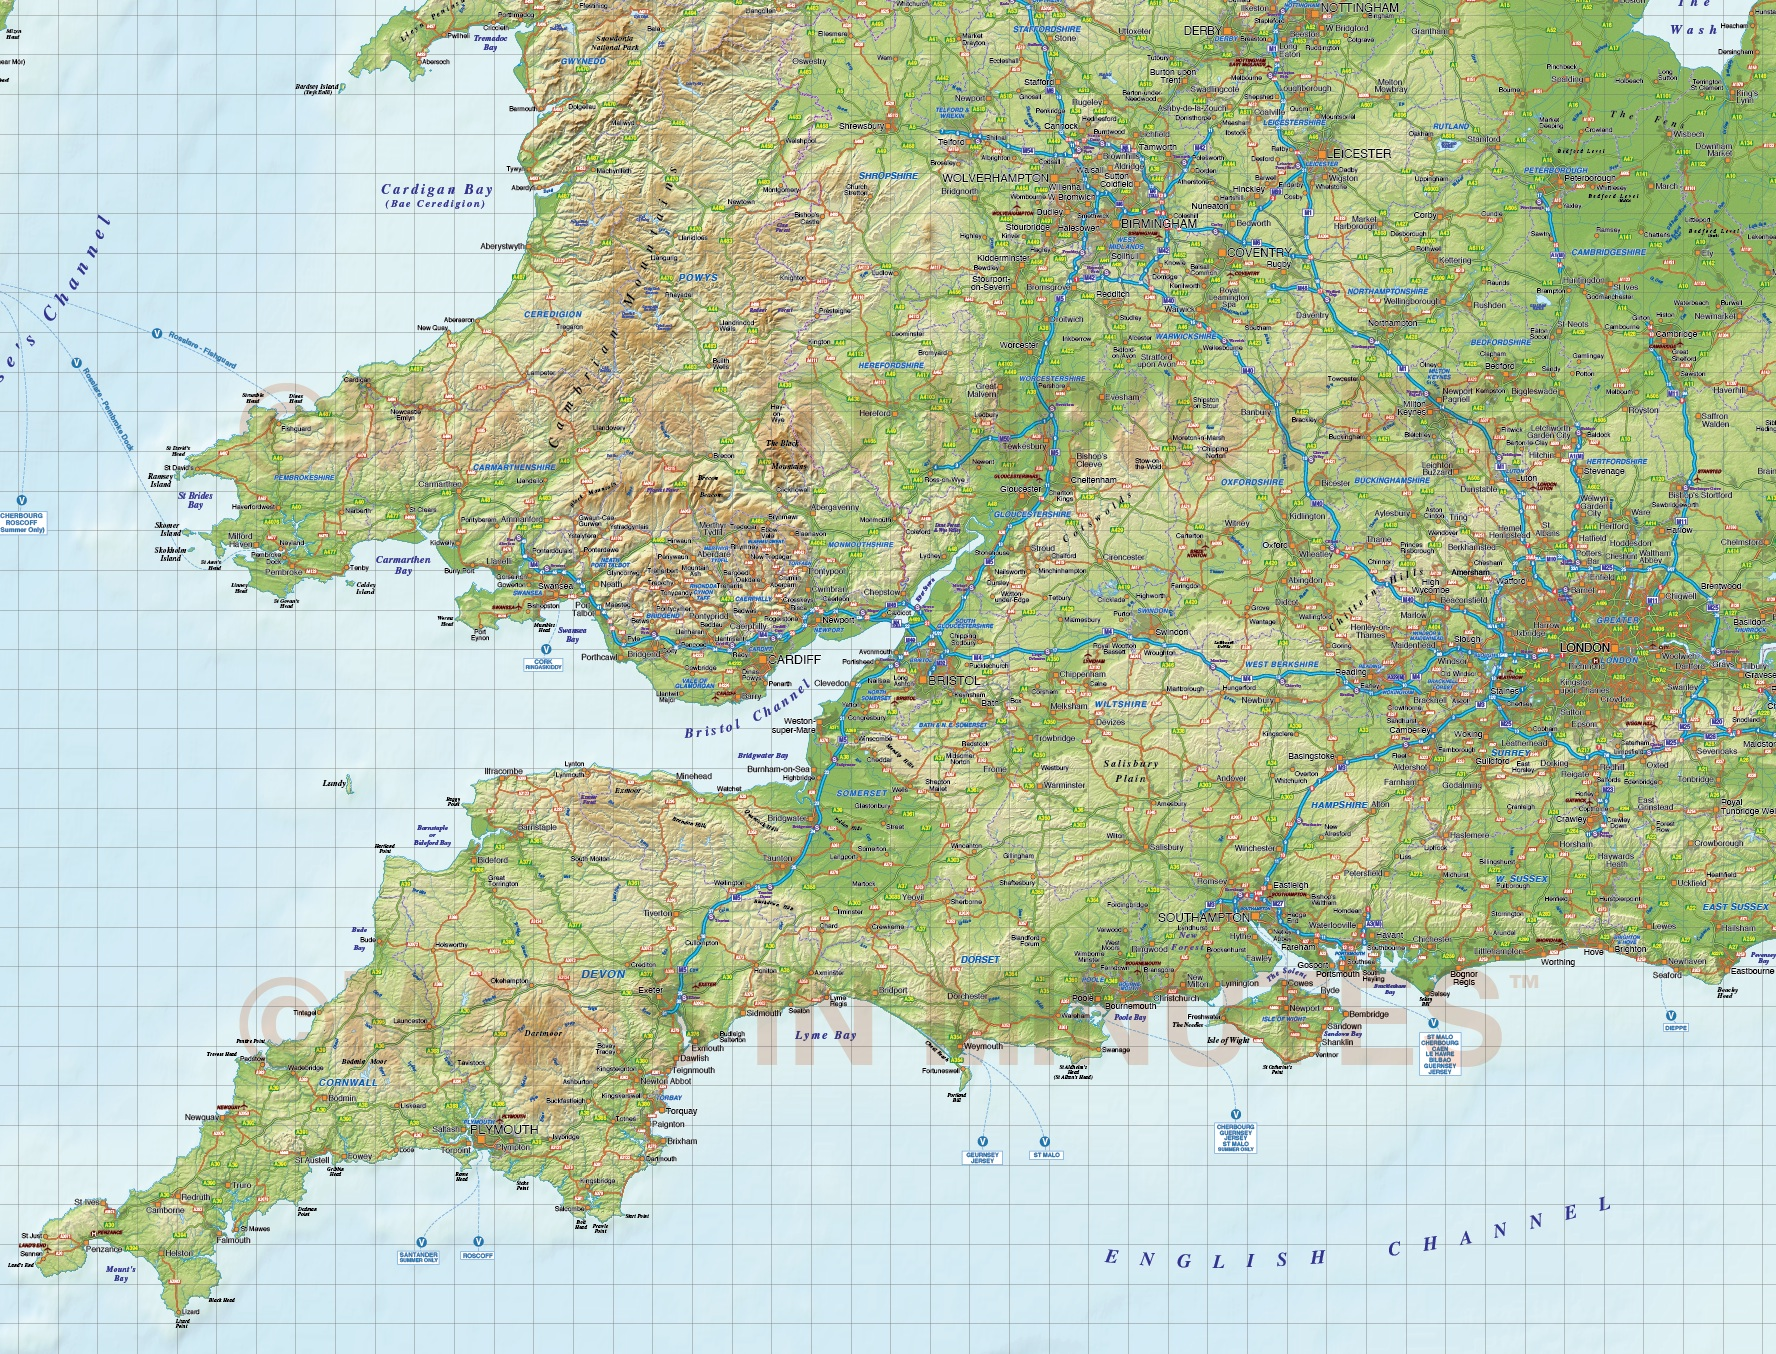 British Isles: British Isles 1st Level Road & Rail Map @1m Scale With